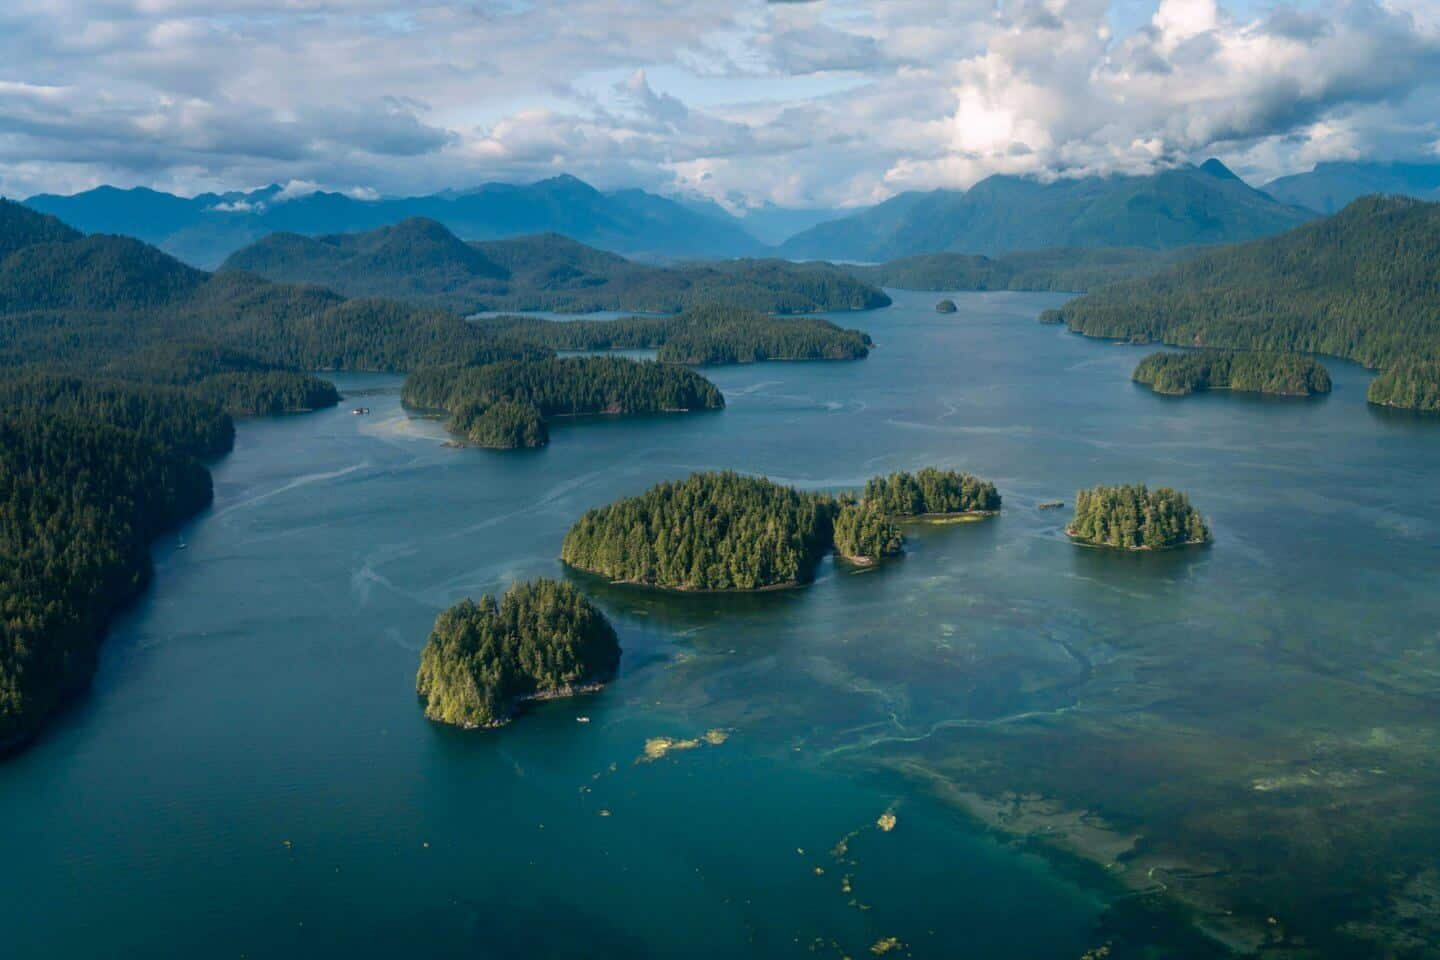 A view of the infinite islands of the Clayoquot Sounds high above Tofino.